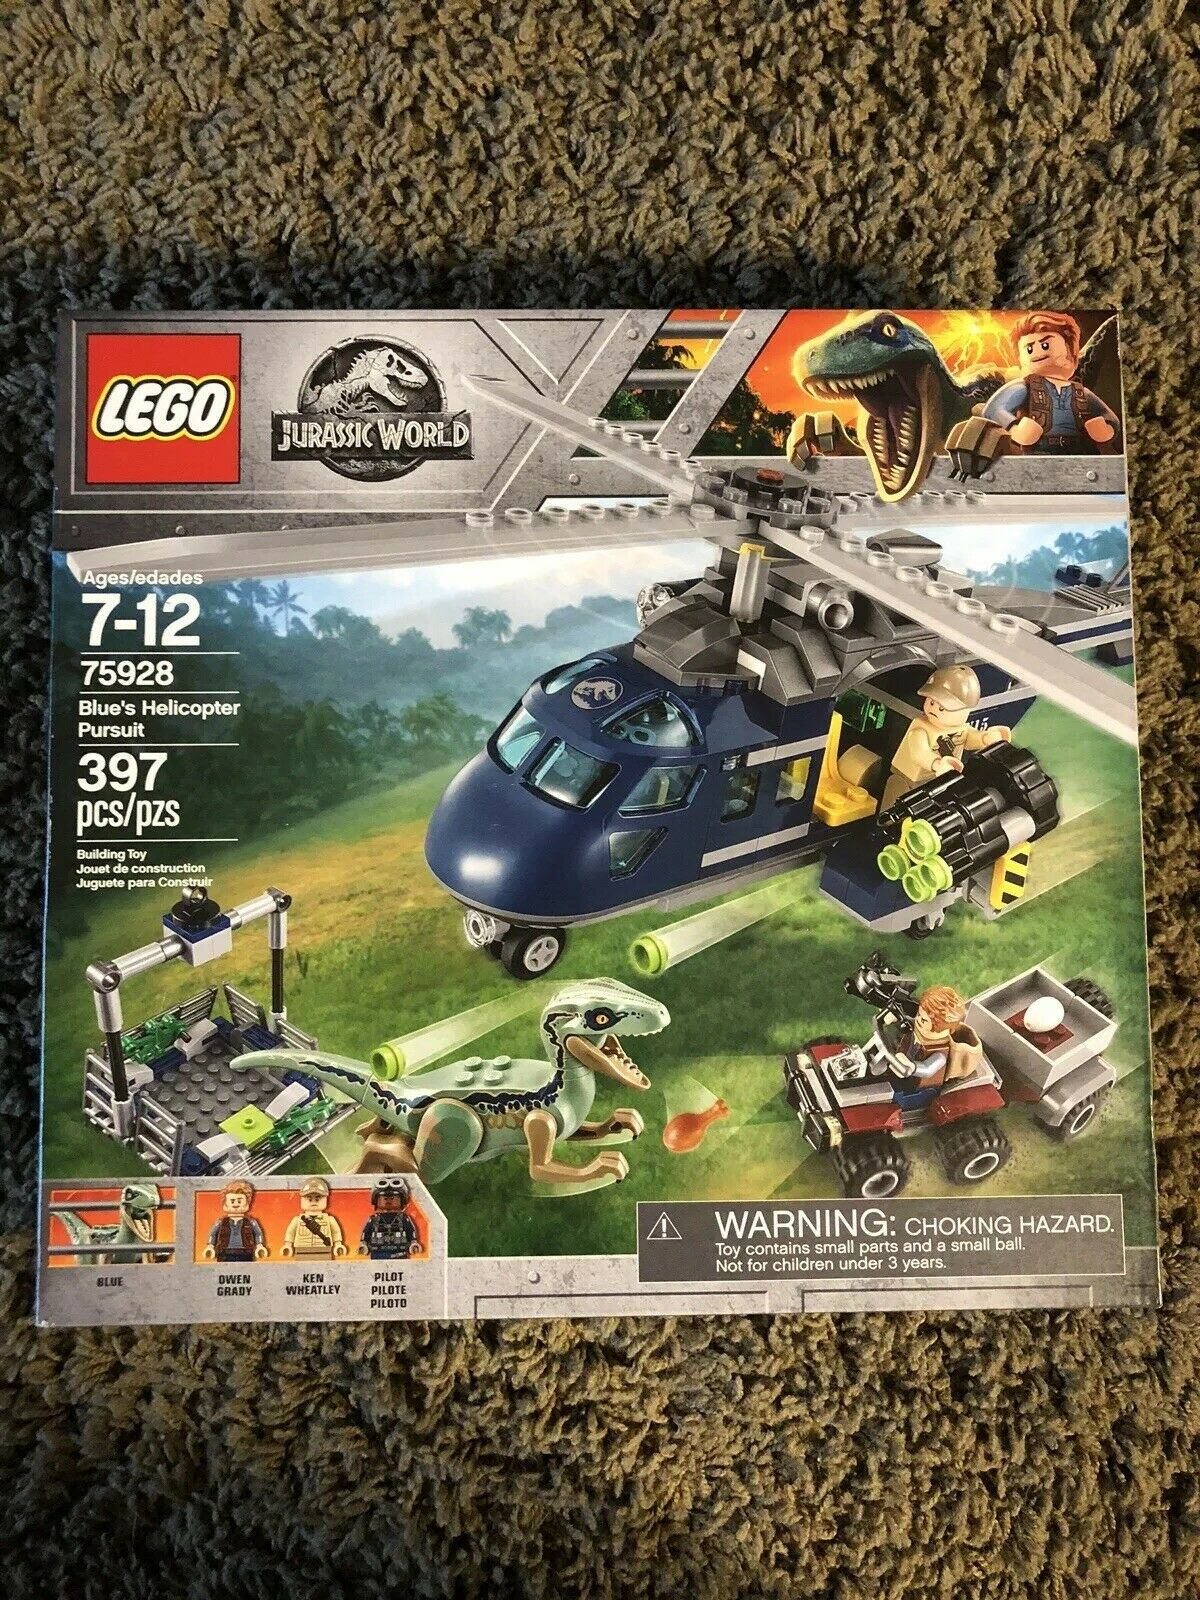 LEGO Jurassic World 75928 NEW Sealed In Box Blau's Helicopter Pursuit 397 Pieces